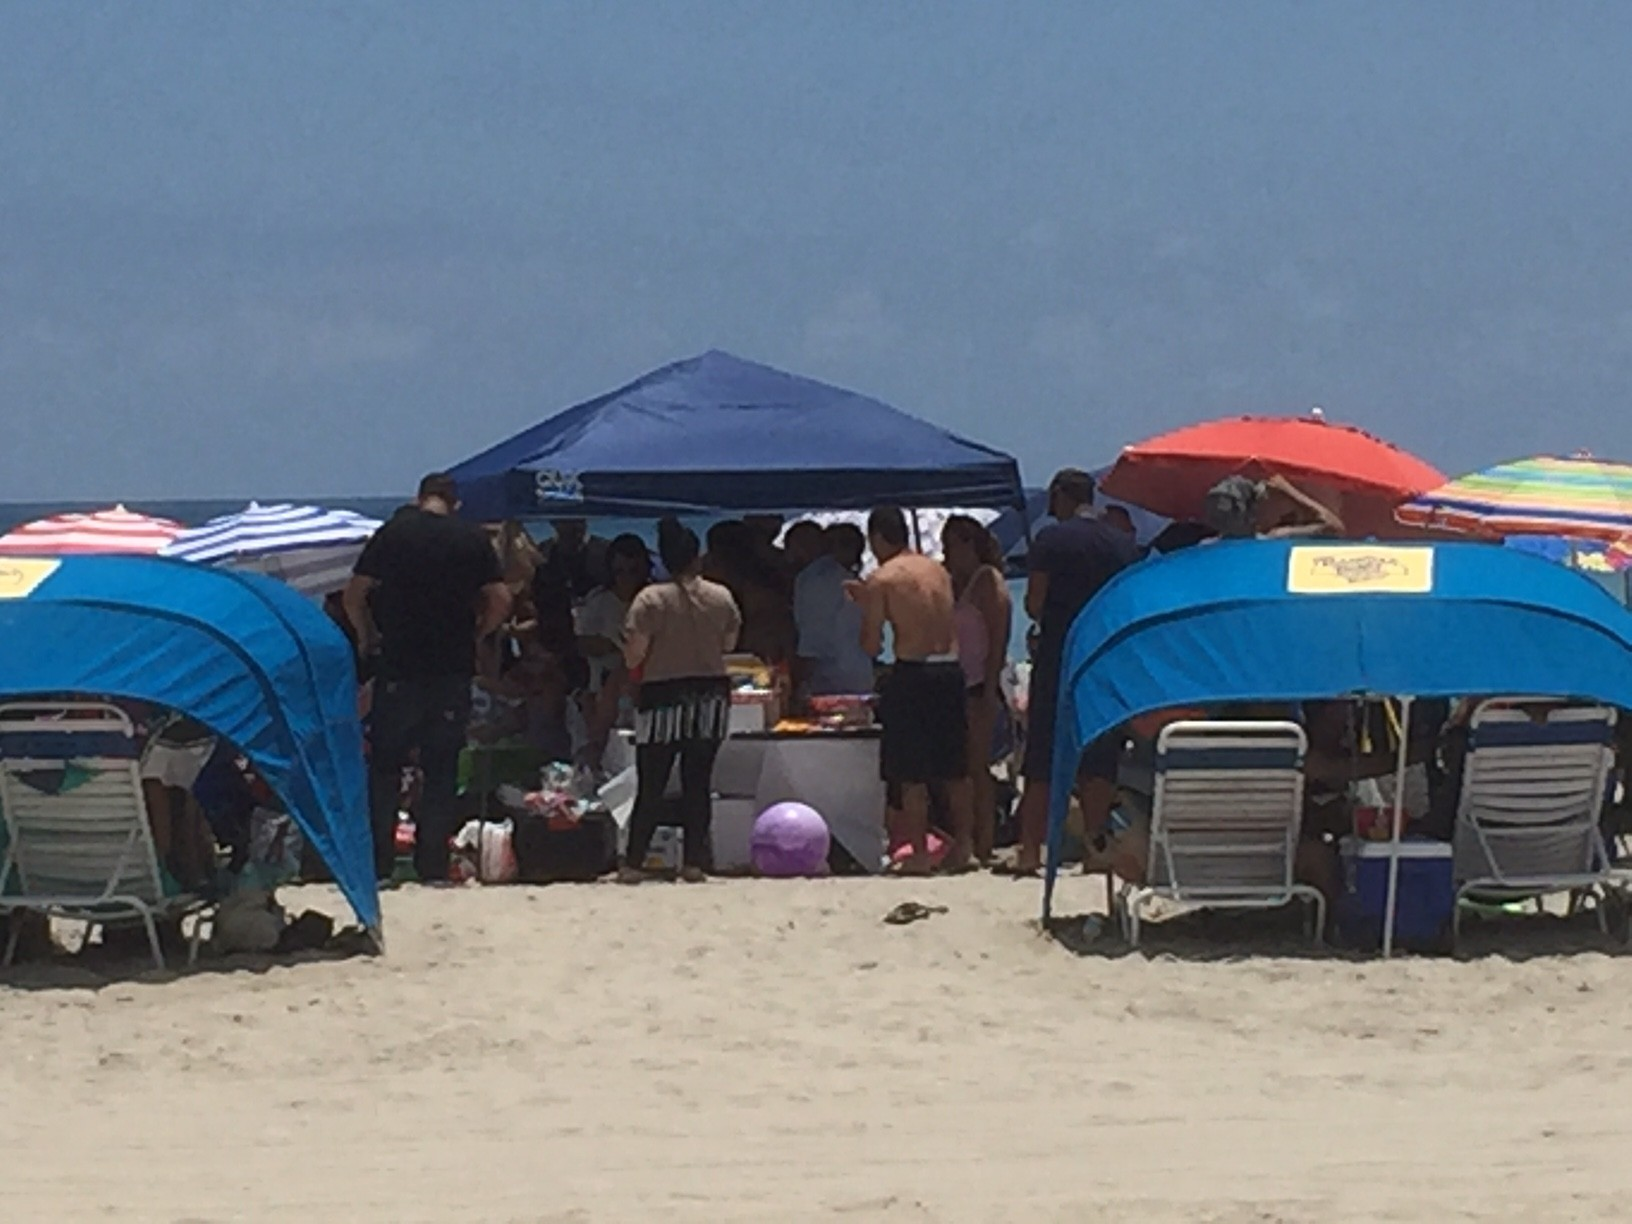 Hollywood may end beach beverage ban but crack down on grills tents - Sun Sentinel & Hollywood may end beach beverage ban but crack down on grills ...